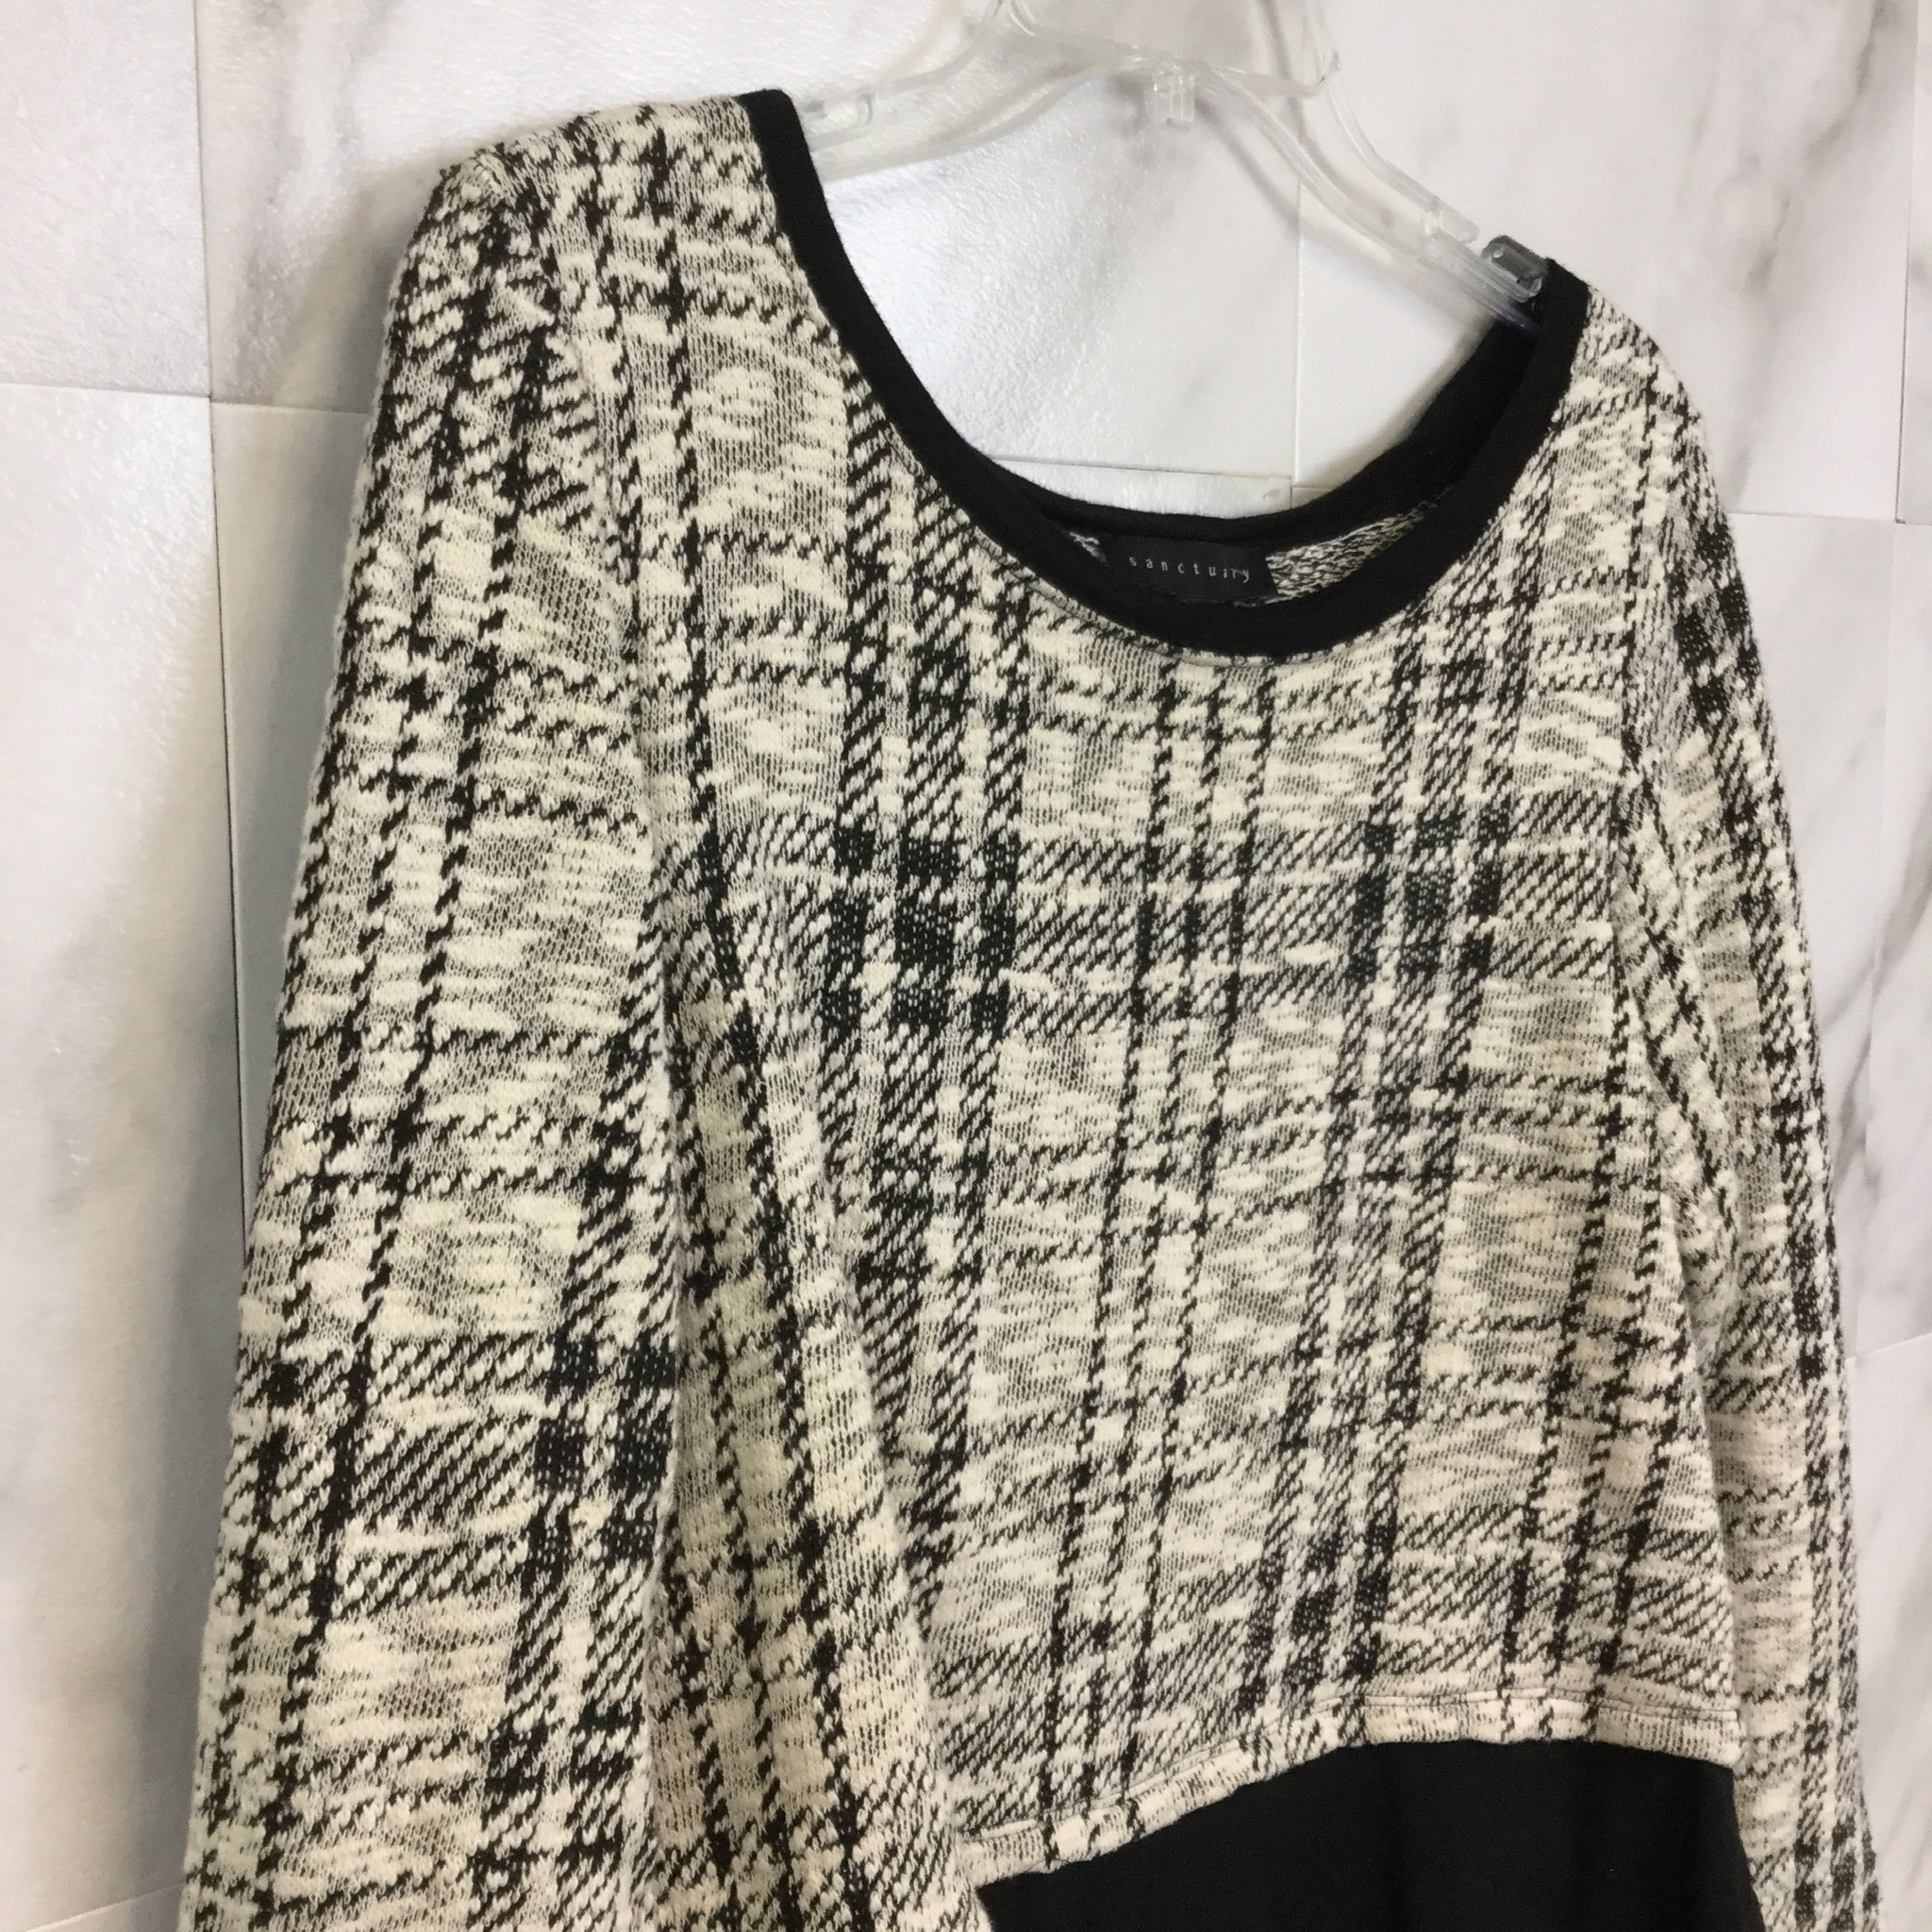 Sanctuary Layered-Look Sweater - Size M